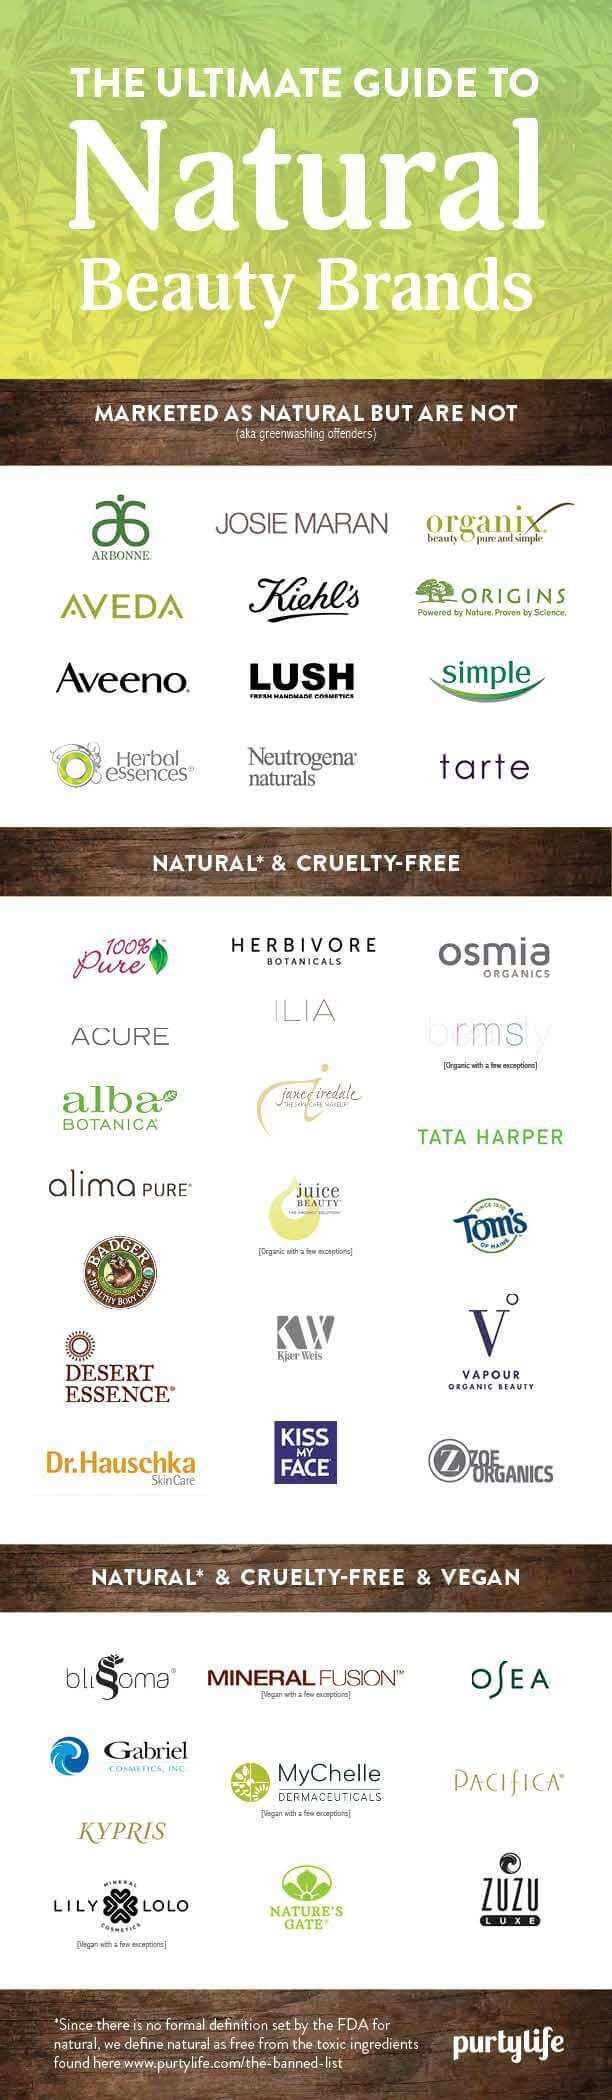 The Ultimate Guide to the Natural, Organic and Vegan Beauty Brands | Discover Non-Toxic, Chemical-Free Makeup & Skincare // www.purtylife.com... www.addisonrenee.com | @Jaey